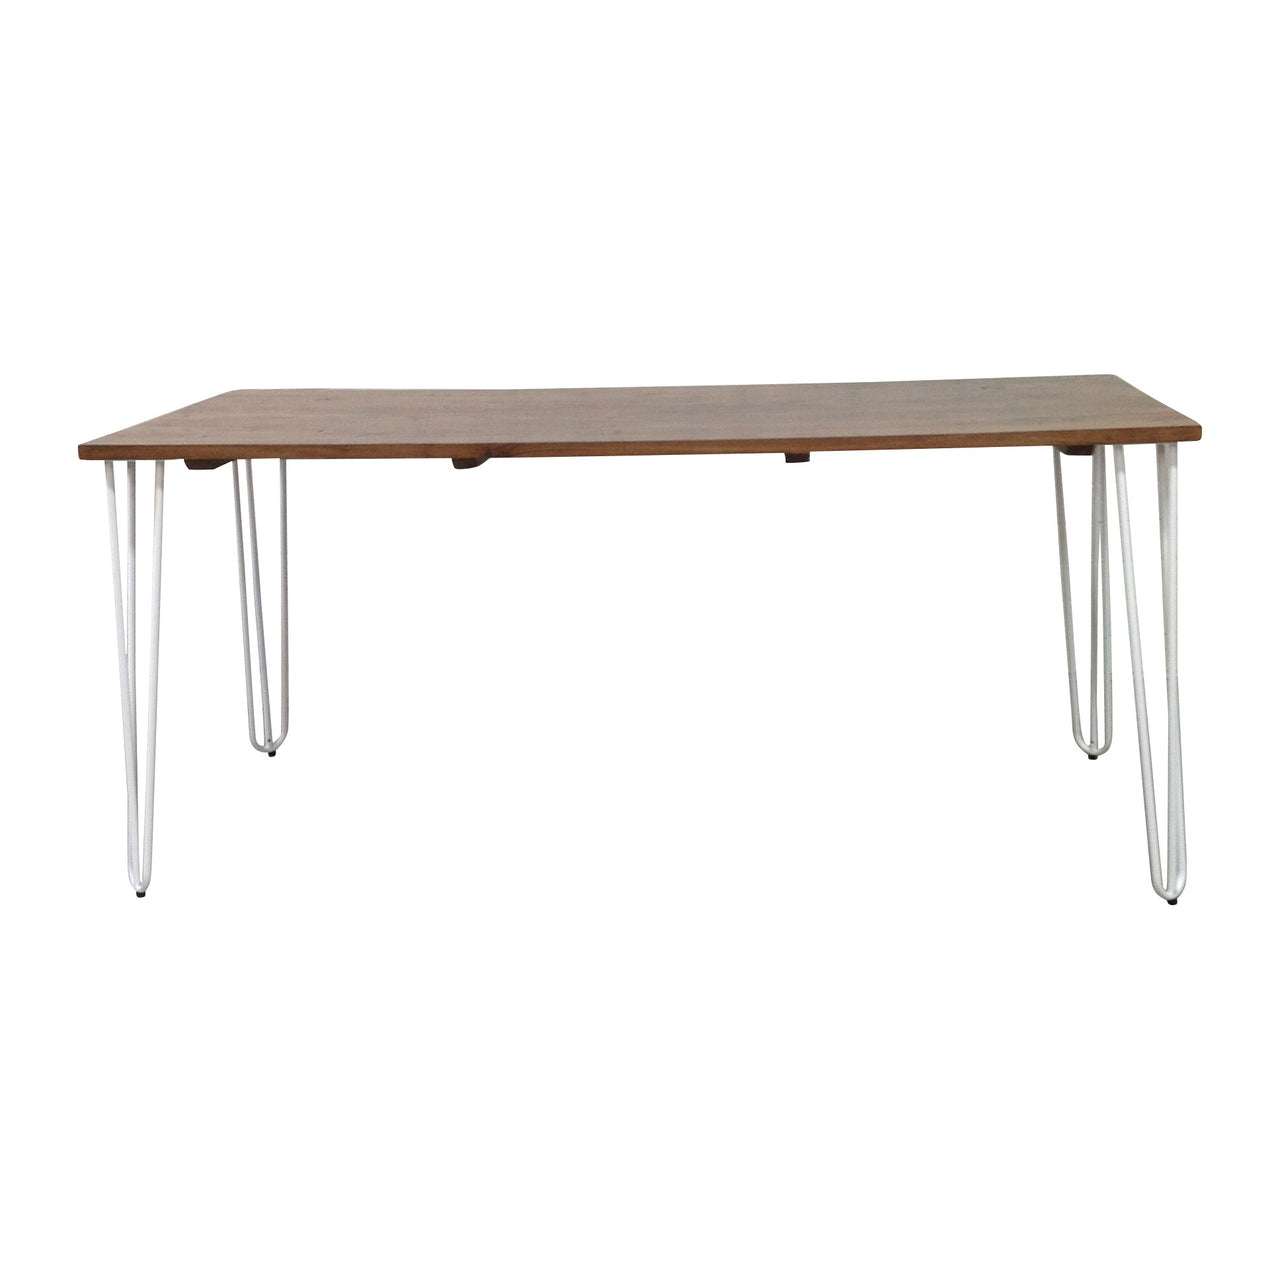 Skaf Dining Table 170 x 70